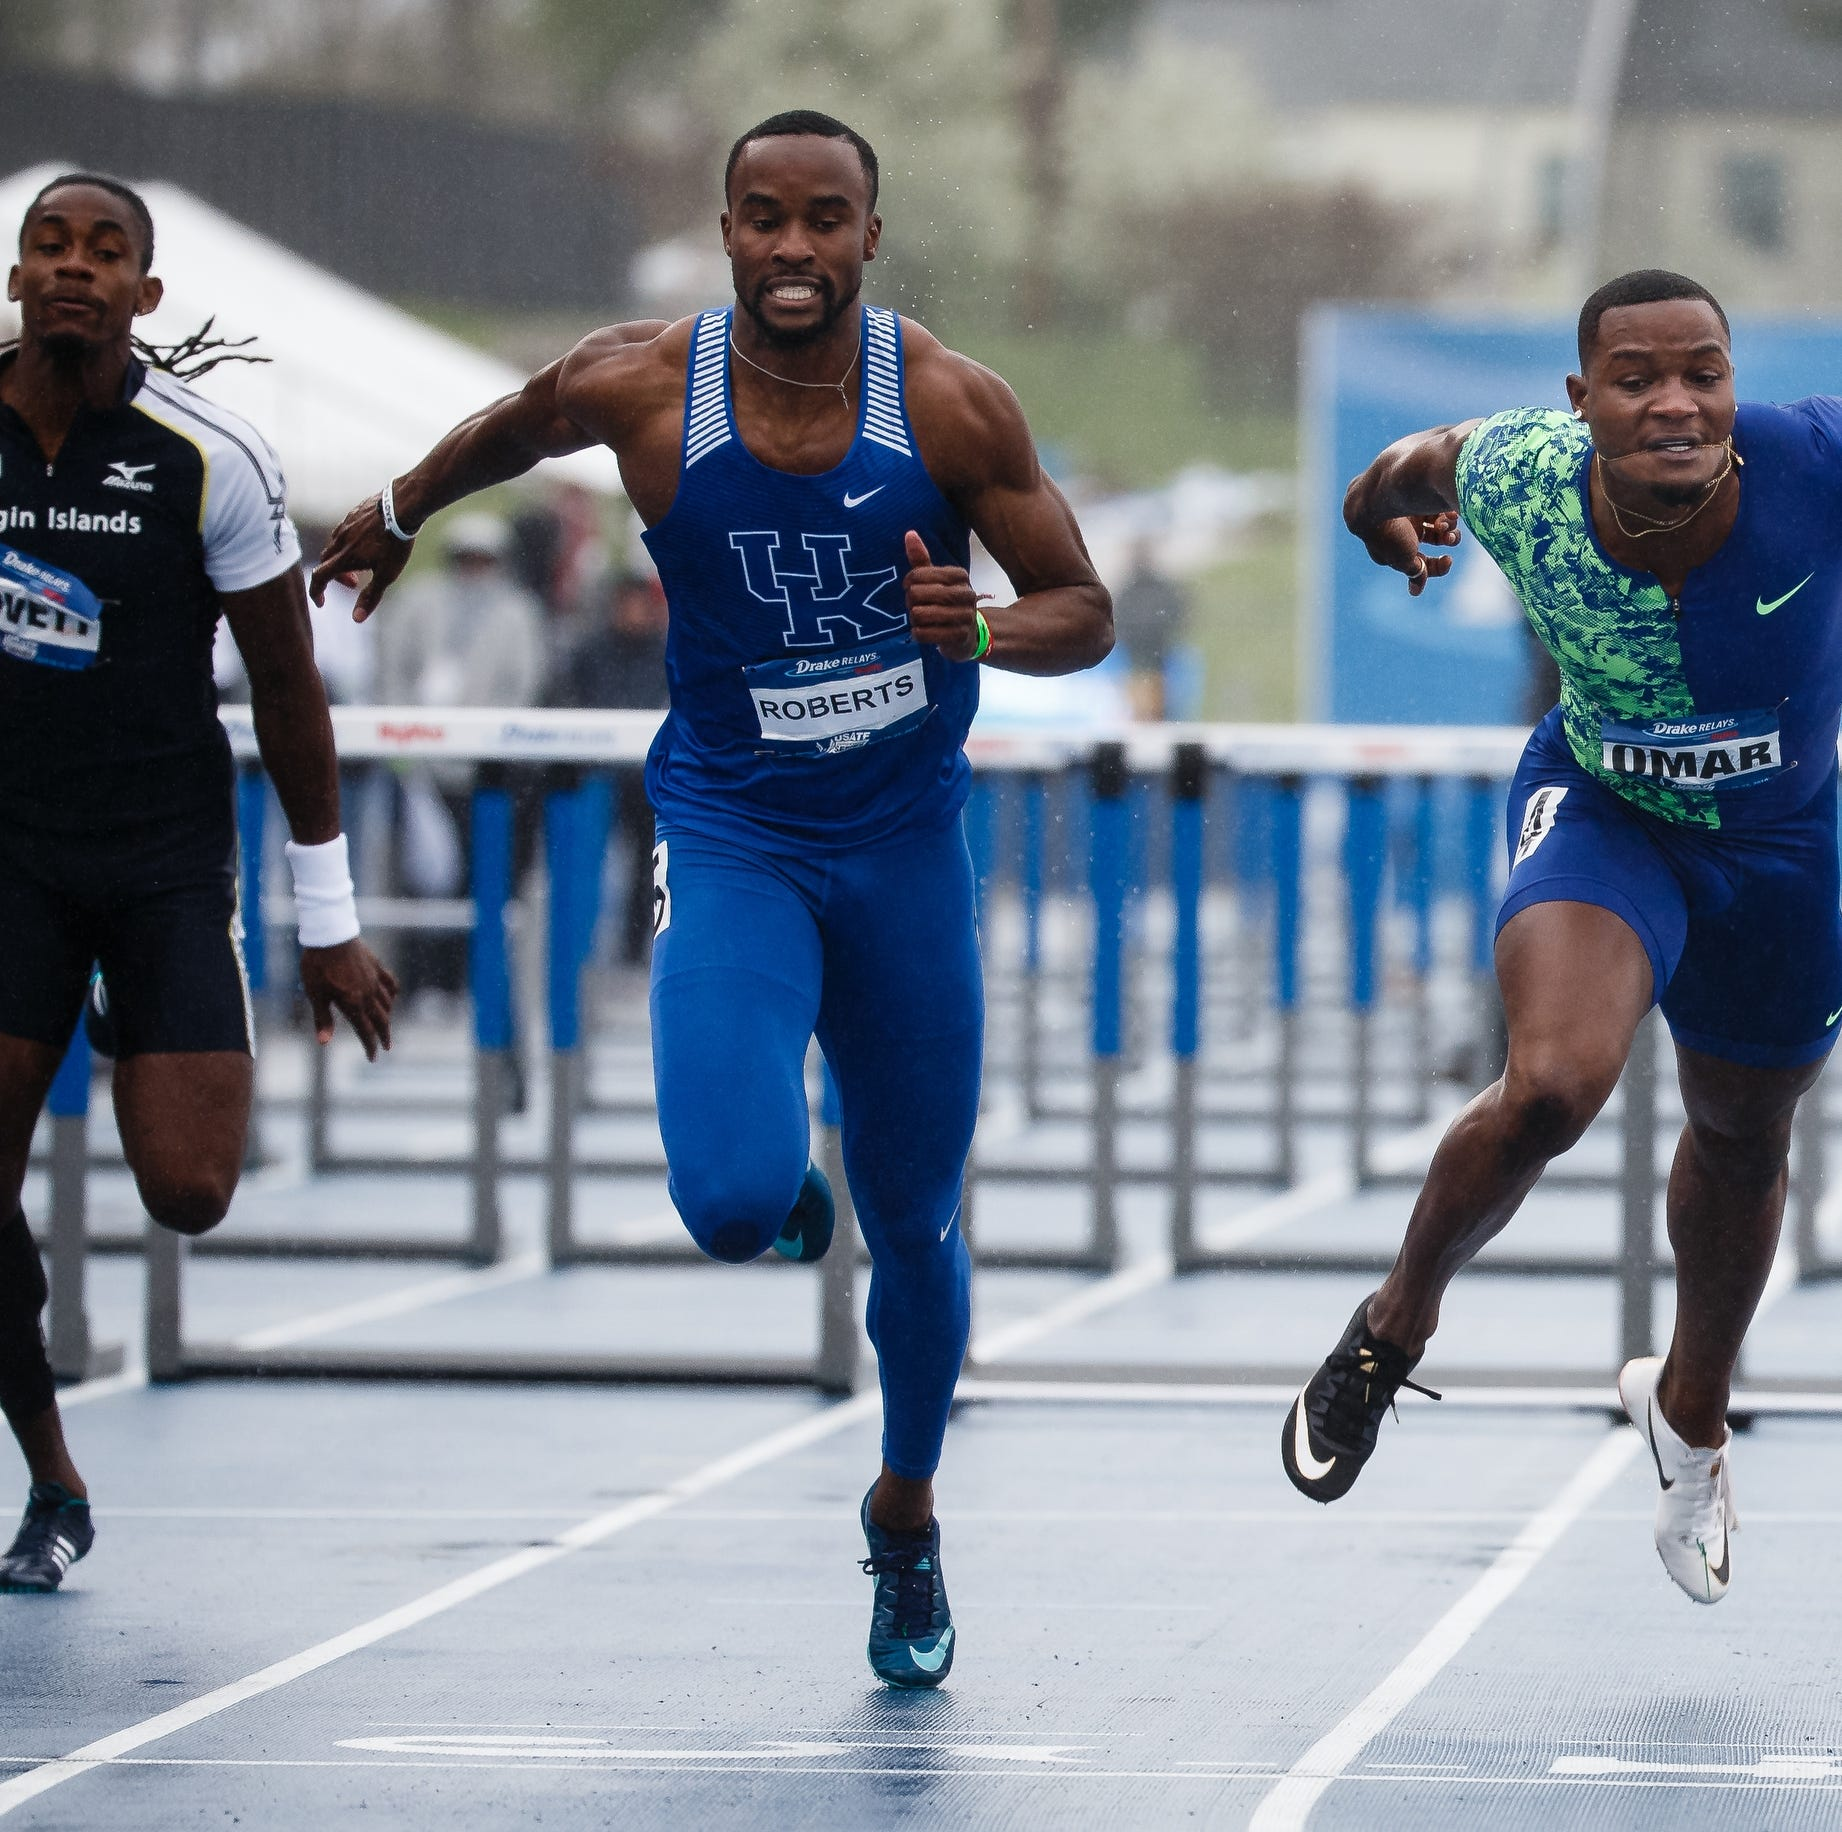 Drake Relays: College runner Roberts knocks off Olympic gold medalist McLeod